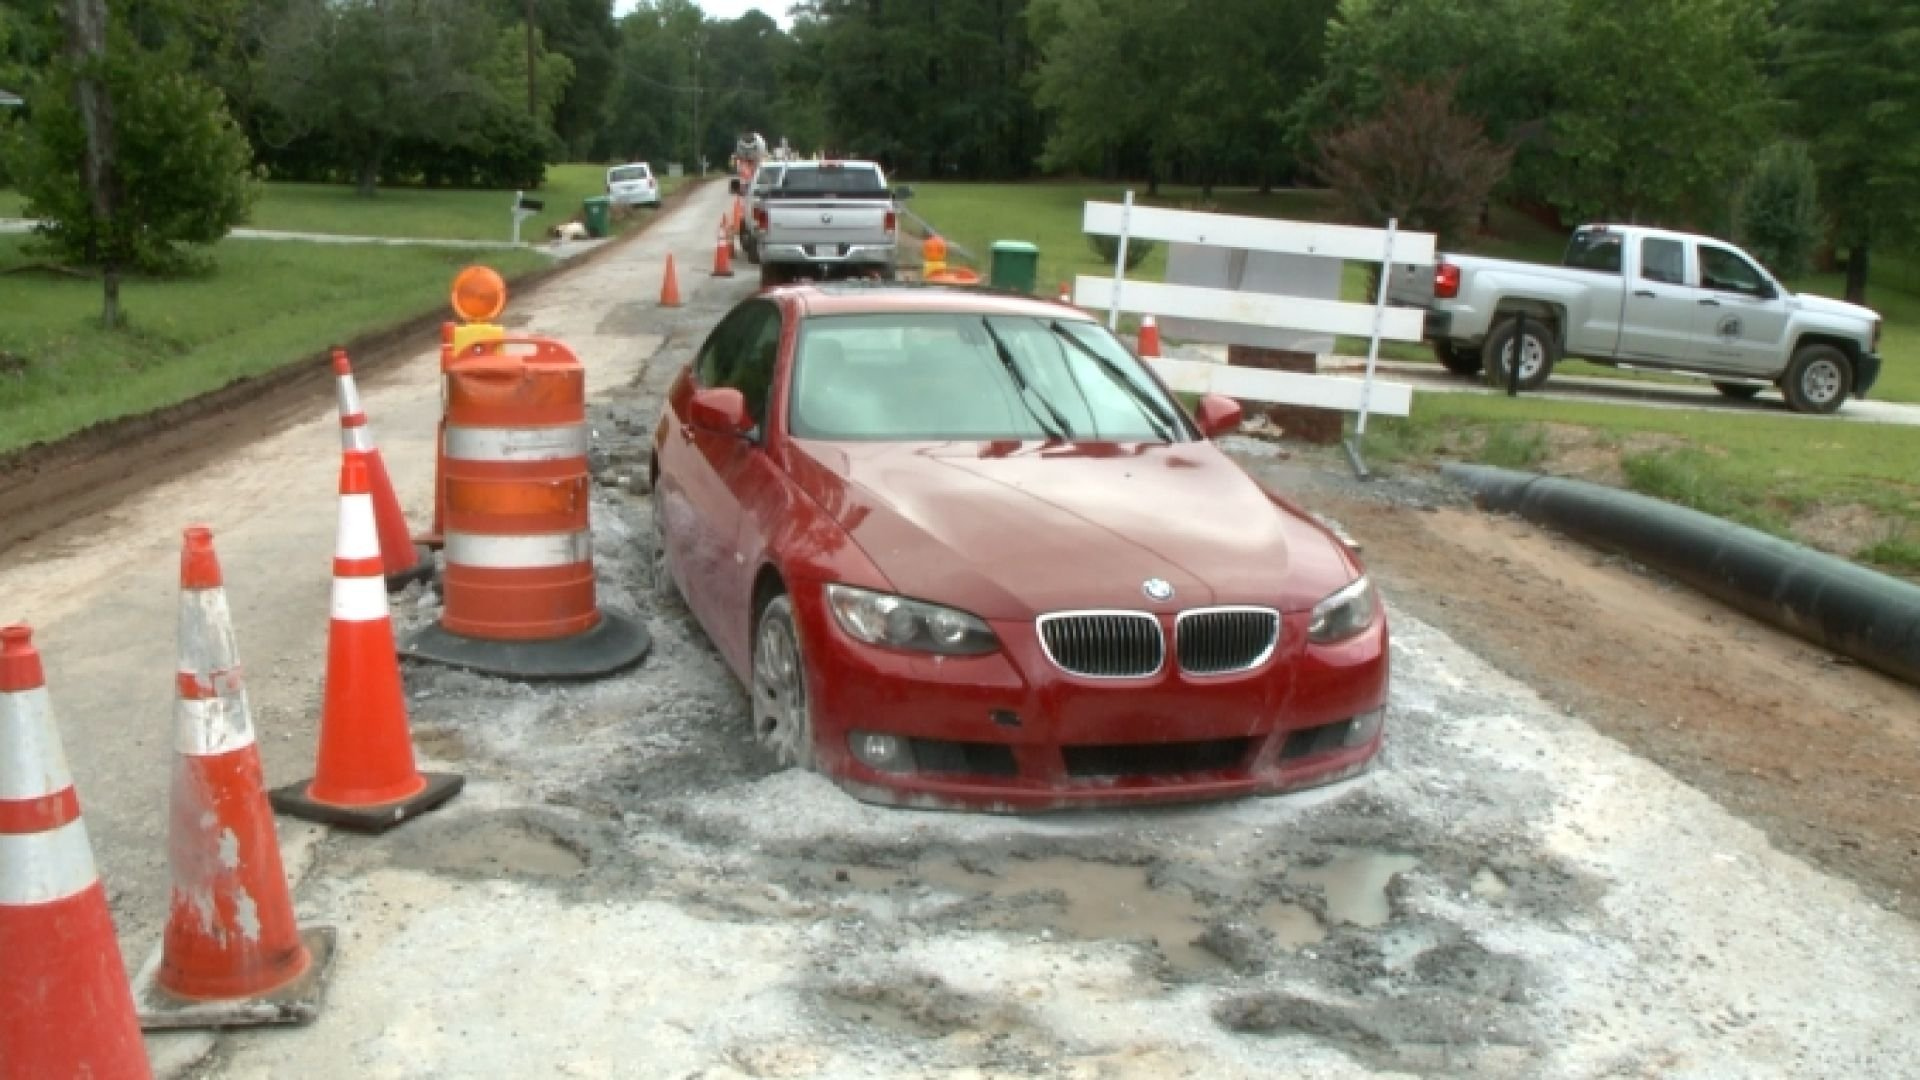 Georgia woman becomes stuck after mistakenly driving her BMW into wet concrete. WXIA's Ryan Kruger reports.